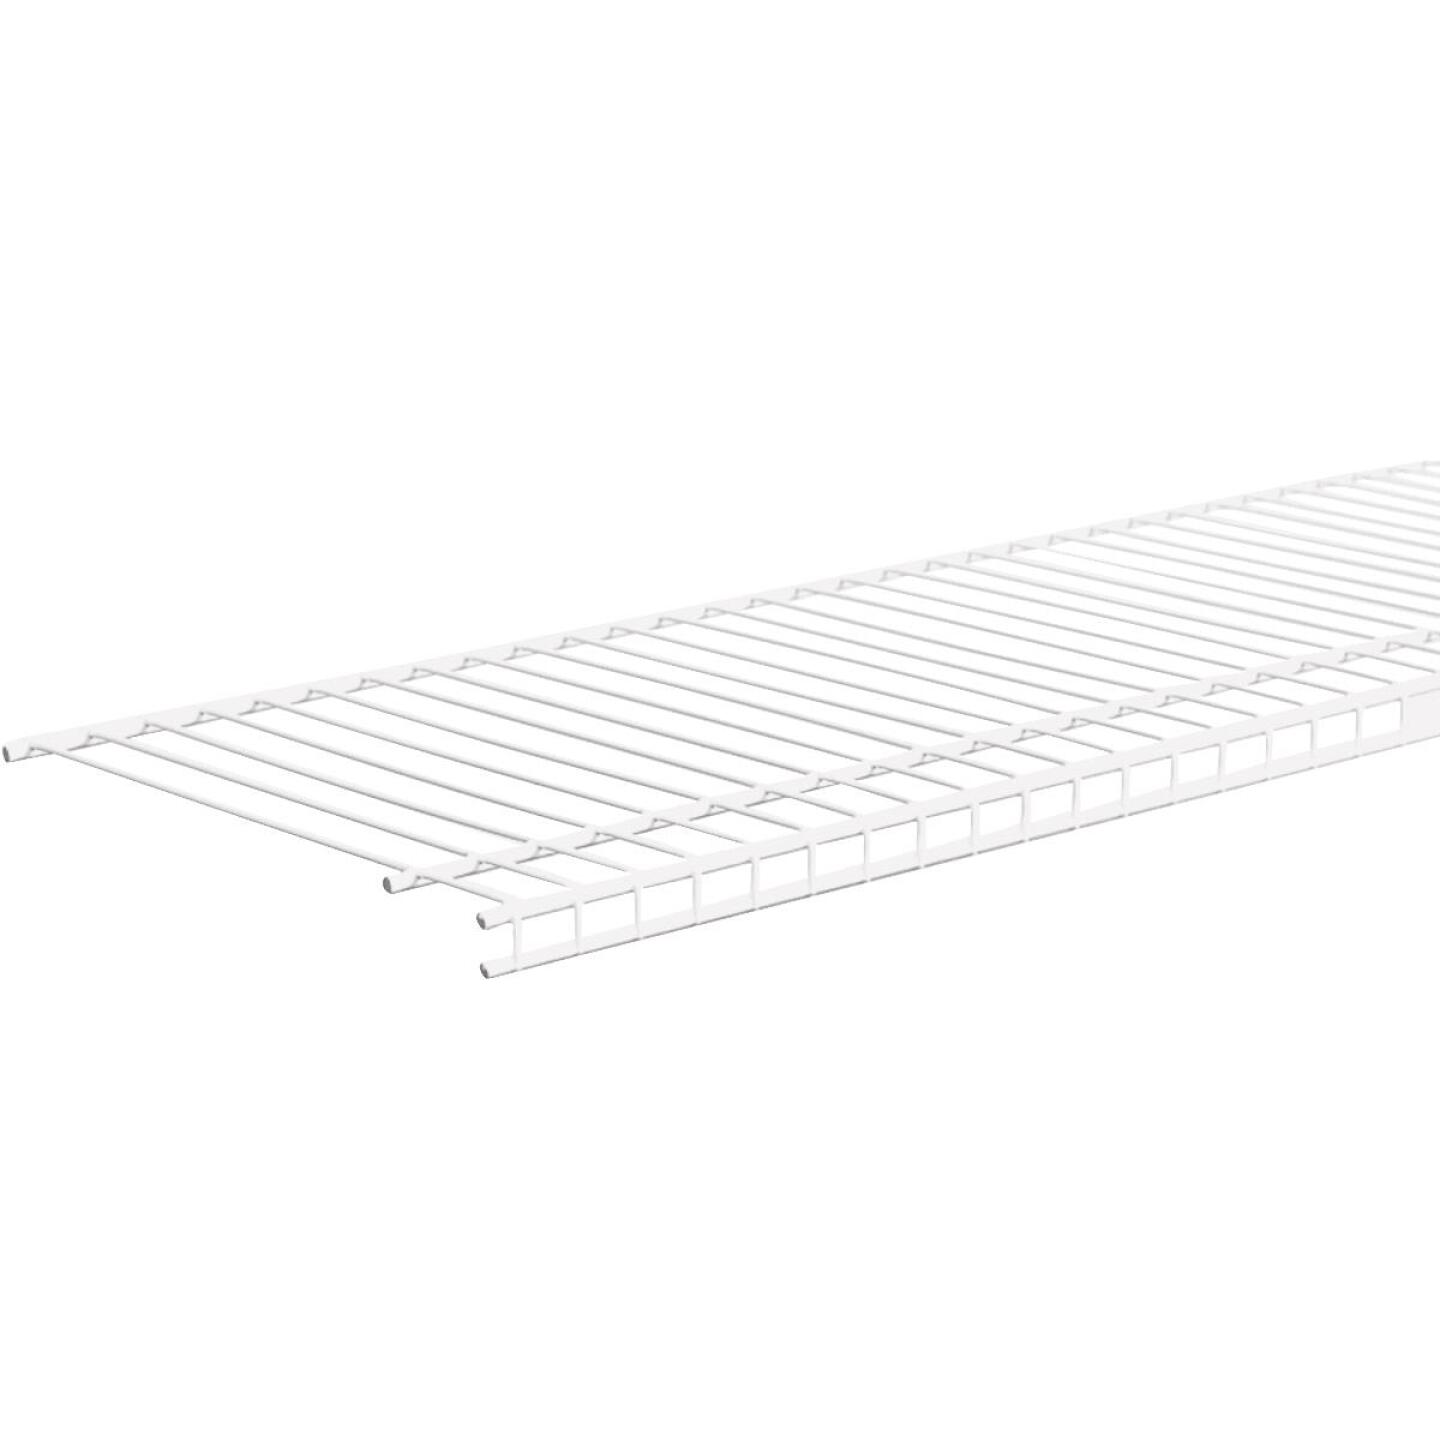 ClosetMaid SuperSlide 6 Ft. W. x 12 In. D. Ventilated Closet Shelf, White Image 3